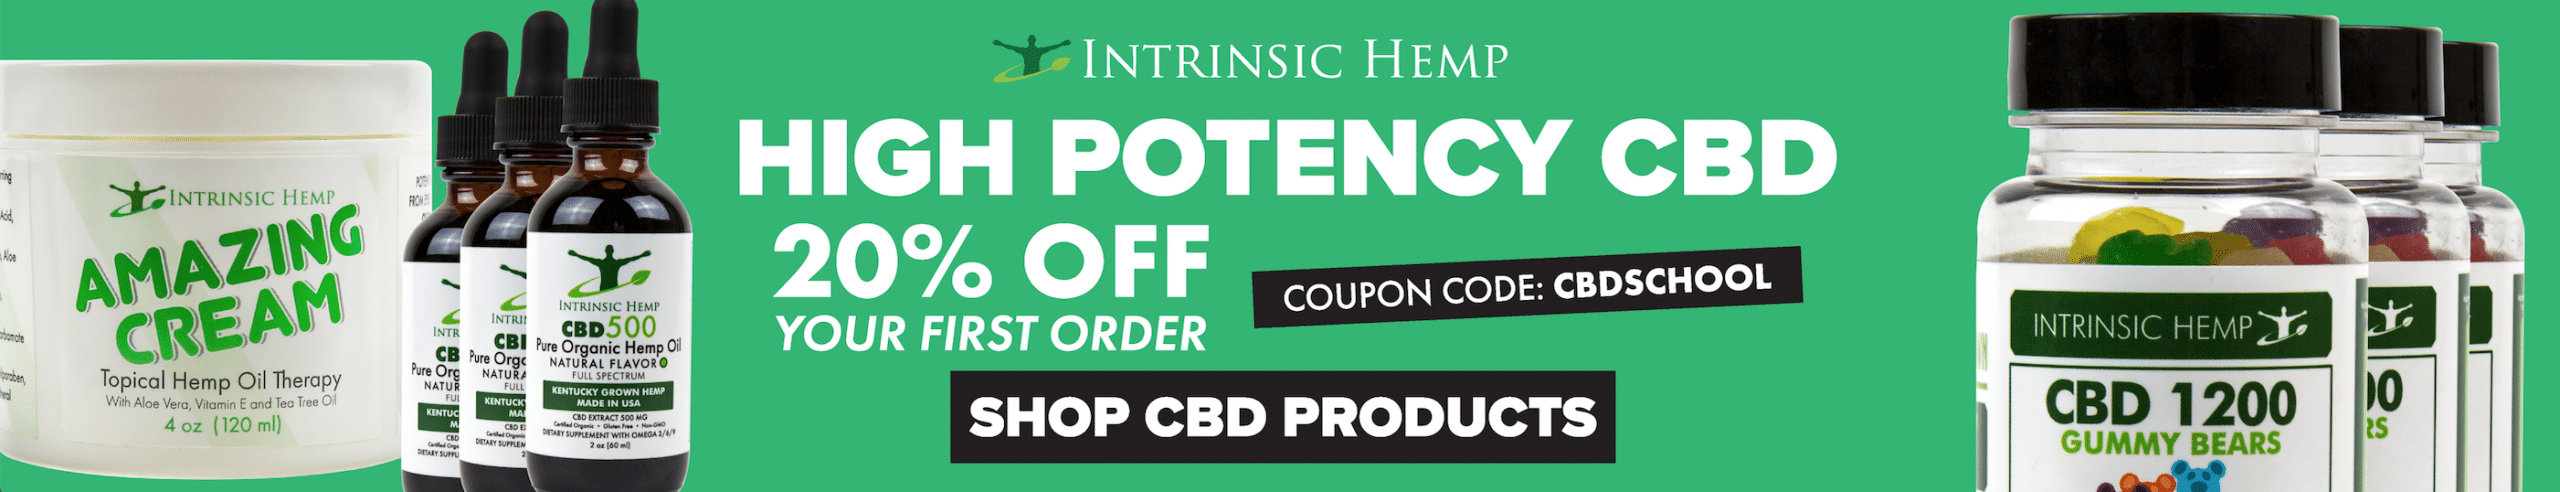 intrinsic hemp banner long